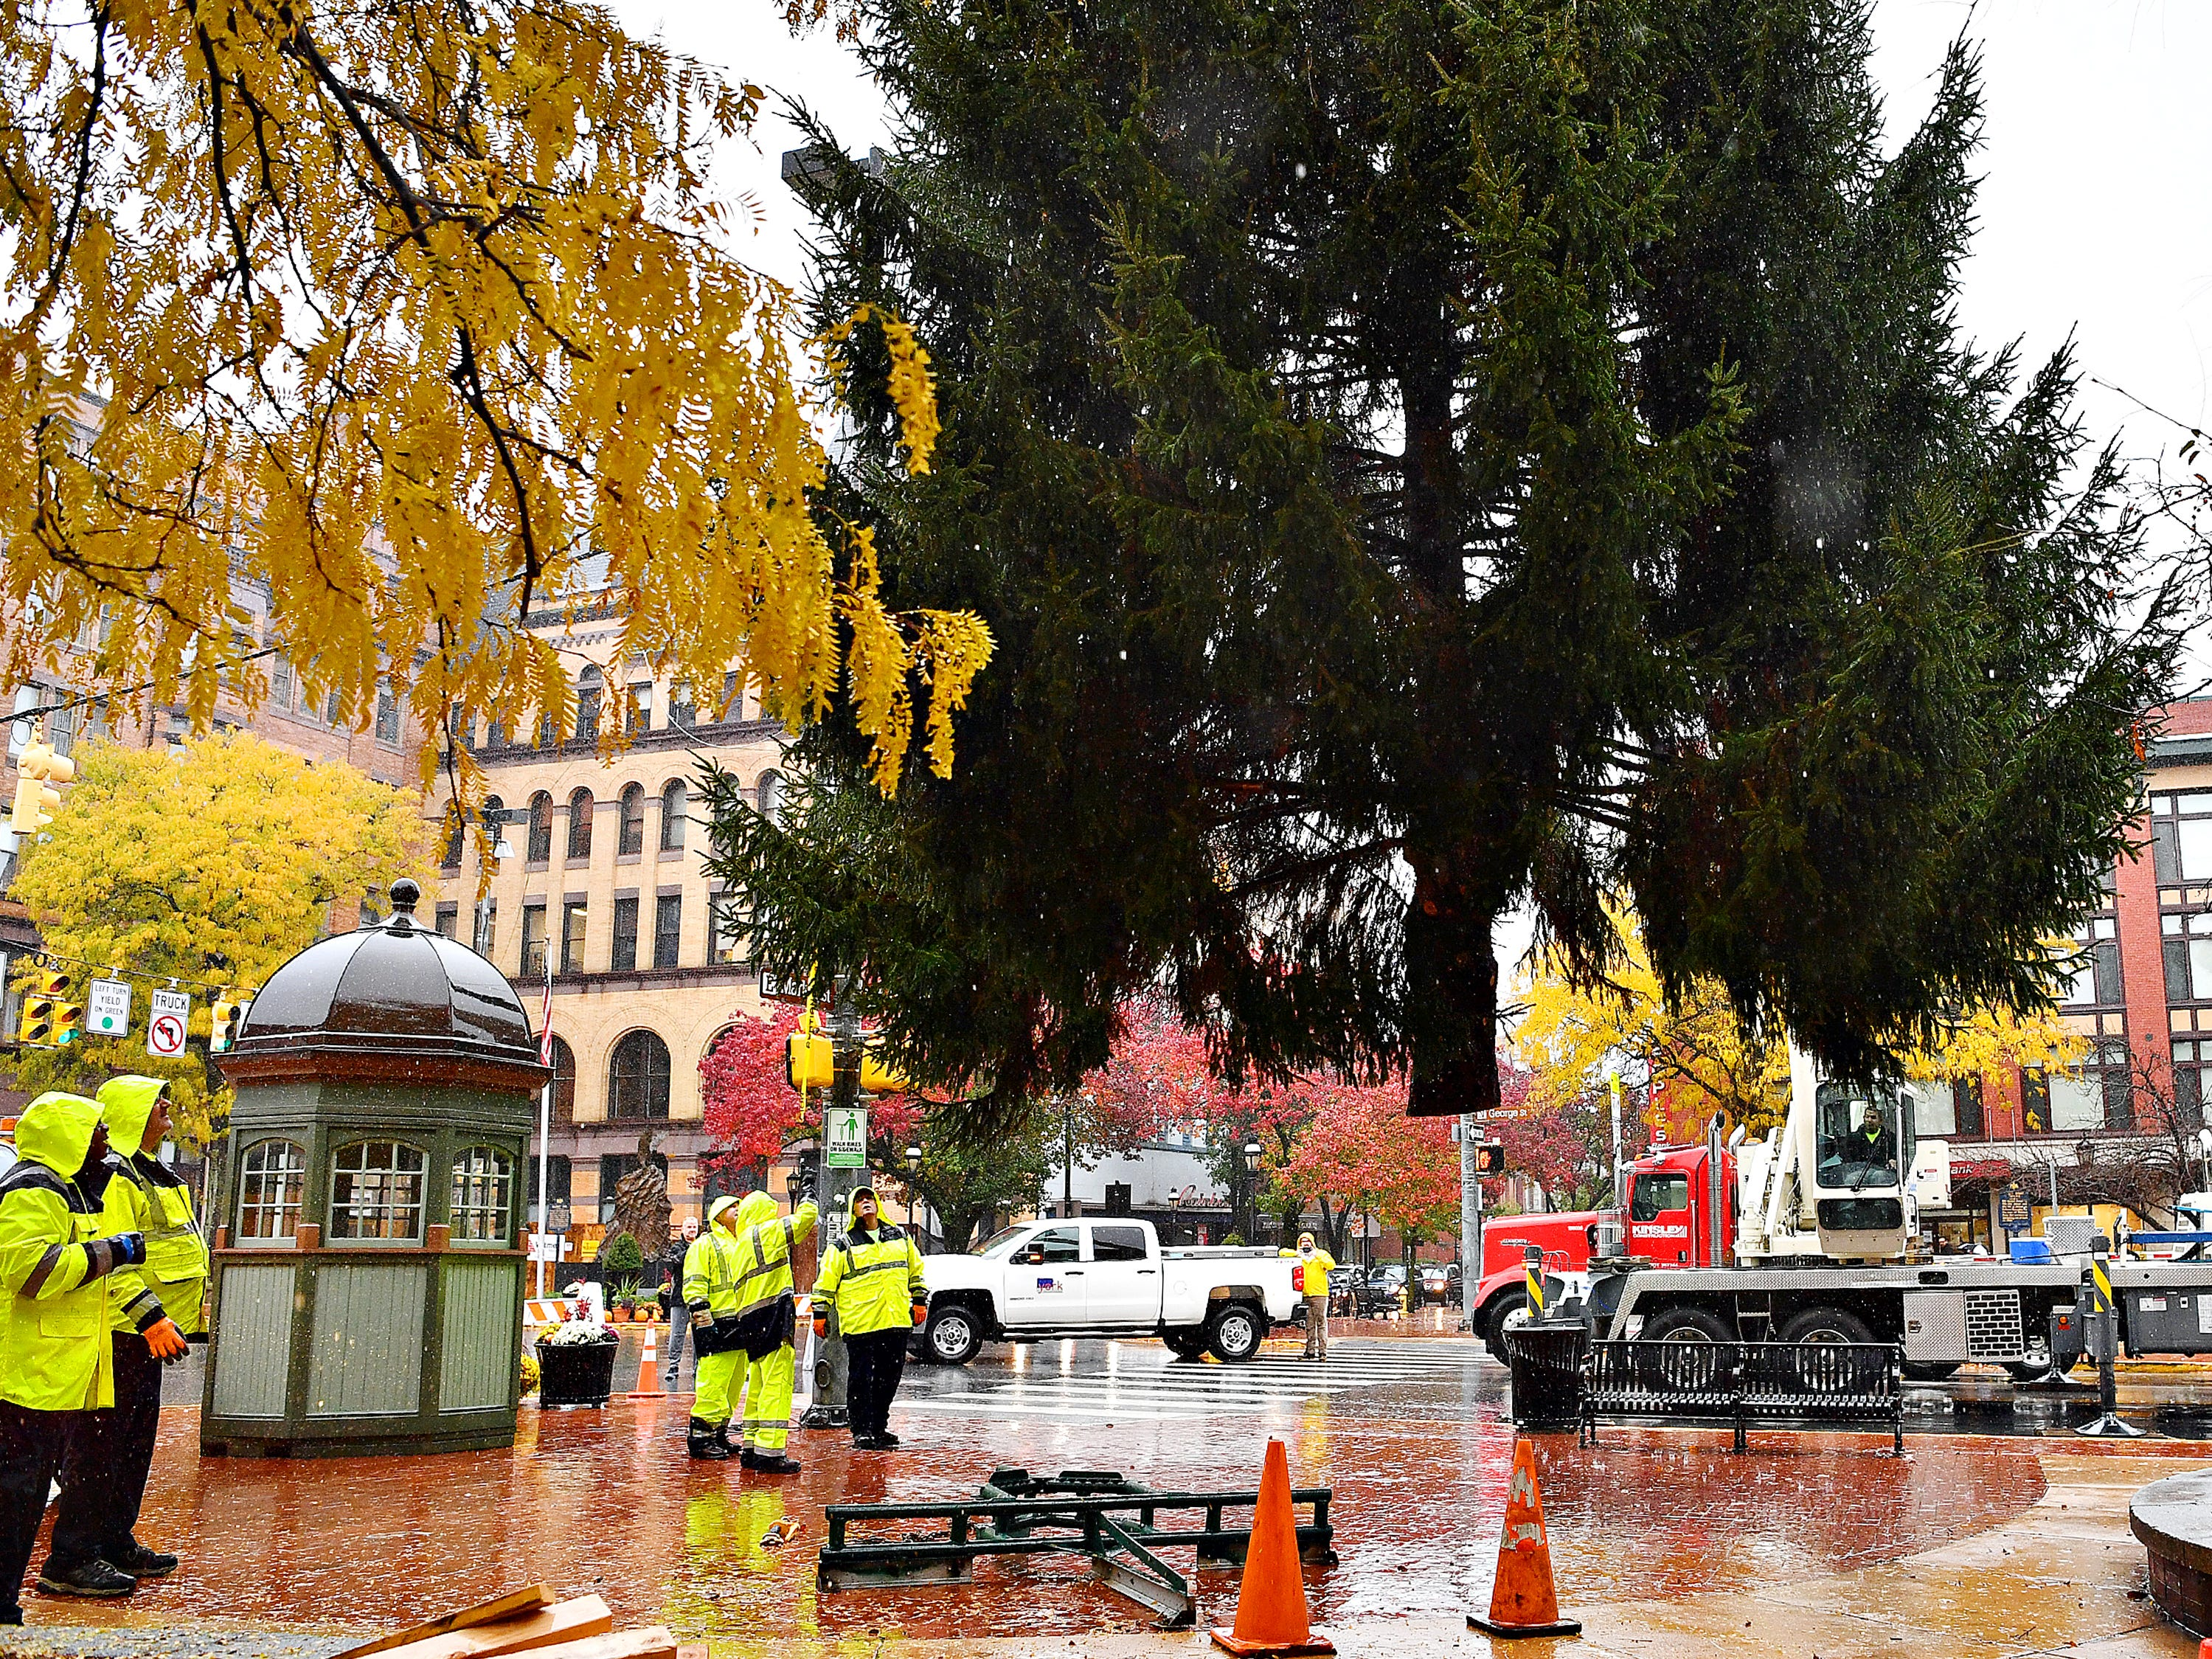 The York Community Christmas Tree, donated by Robin Hildeband, of York, is placed in Continental Square in York City, Tuesday, Nov. 6, 2018. Once decorated, the tree will be lit during the annual Light Up York ceremony to be held in the square amidst a day of family activities on Saturday, Dec. 1. Dawn J. Sagert photo